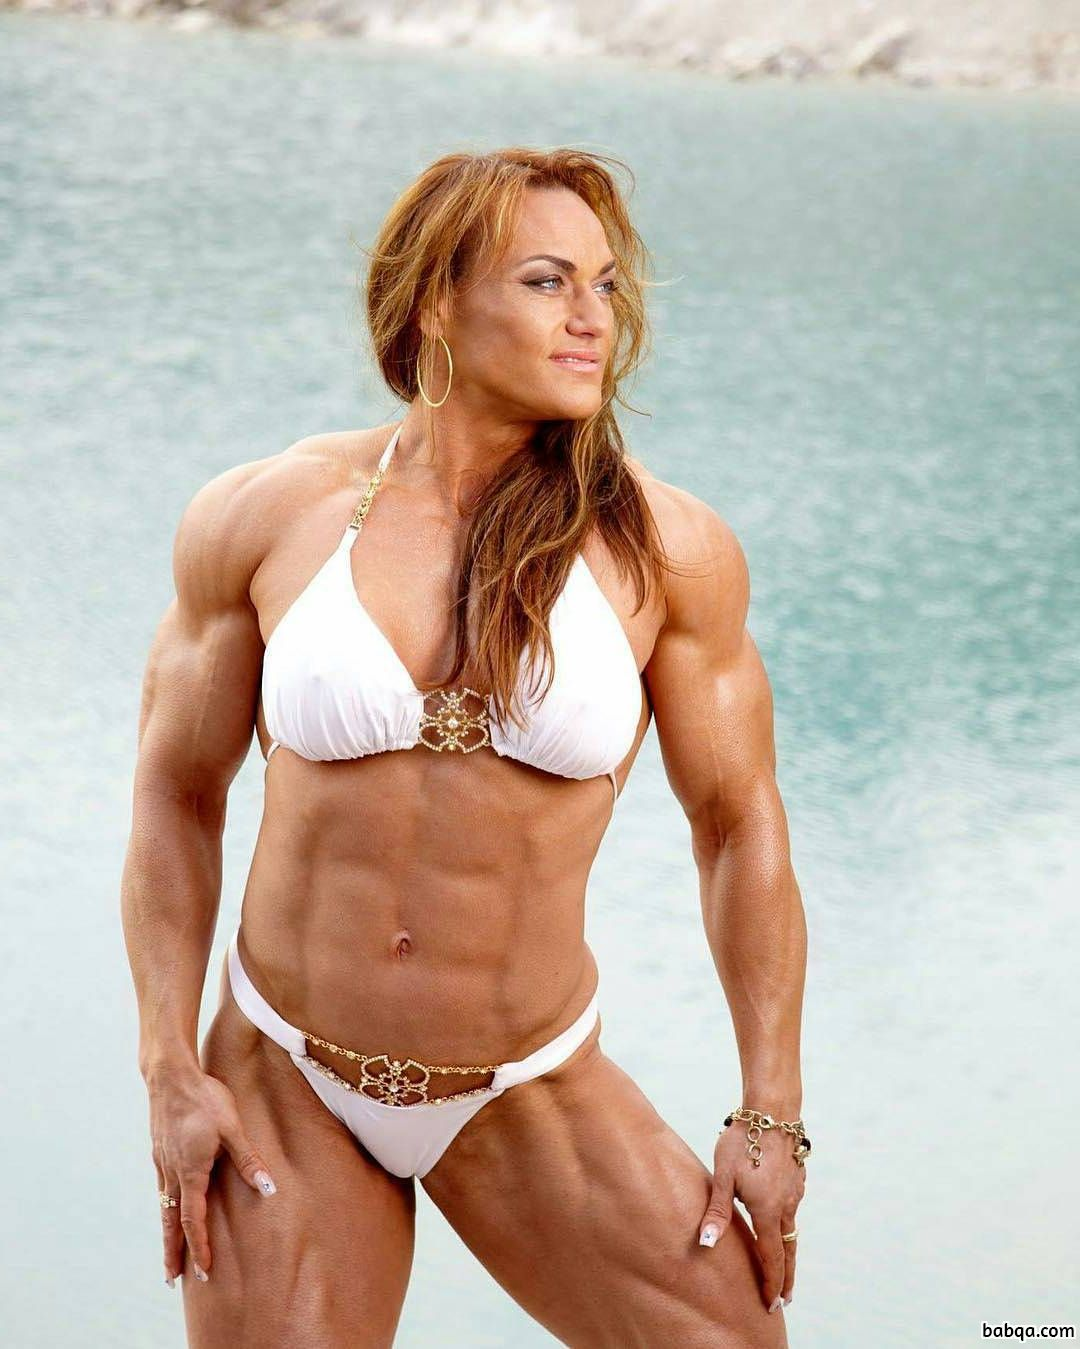 hottest lady with muscular body and toned biceps post from flickr